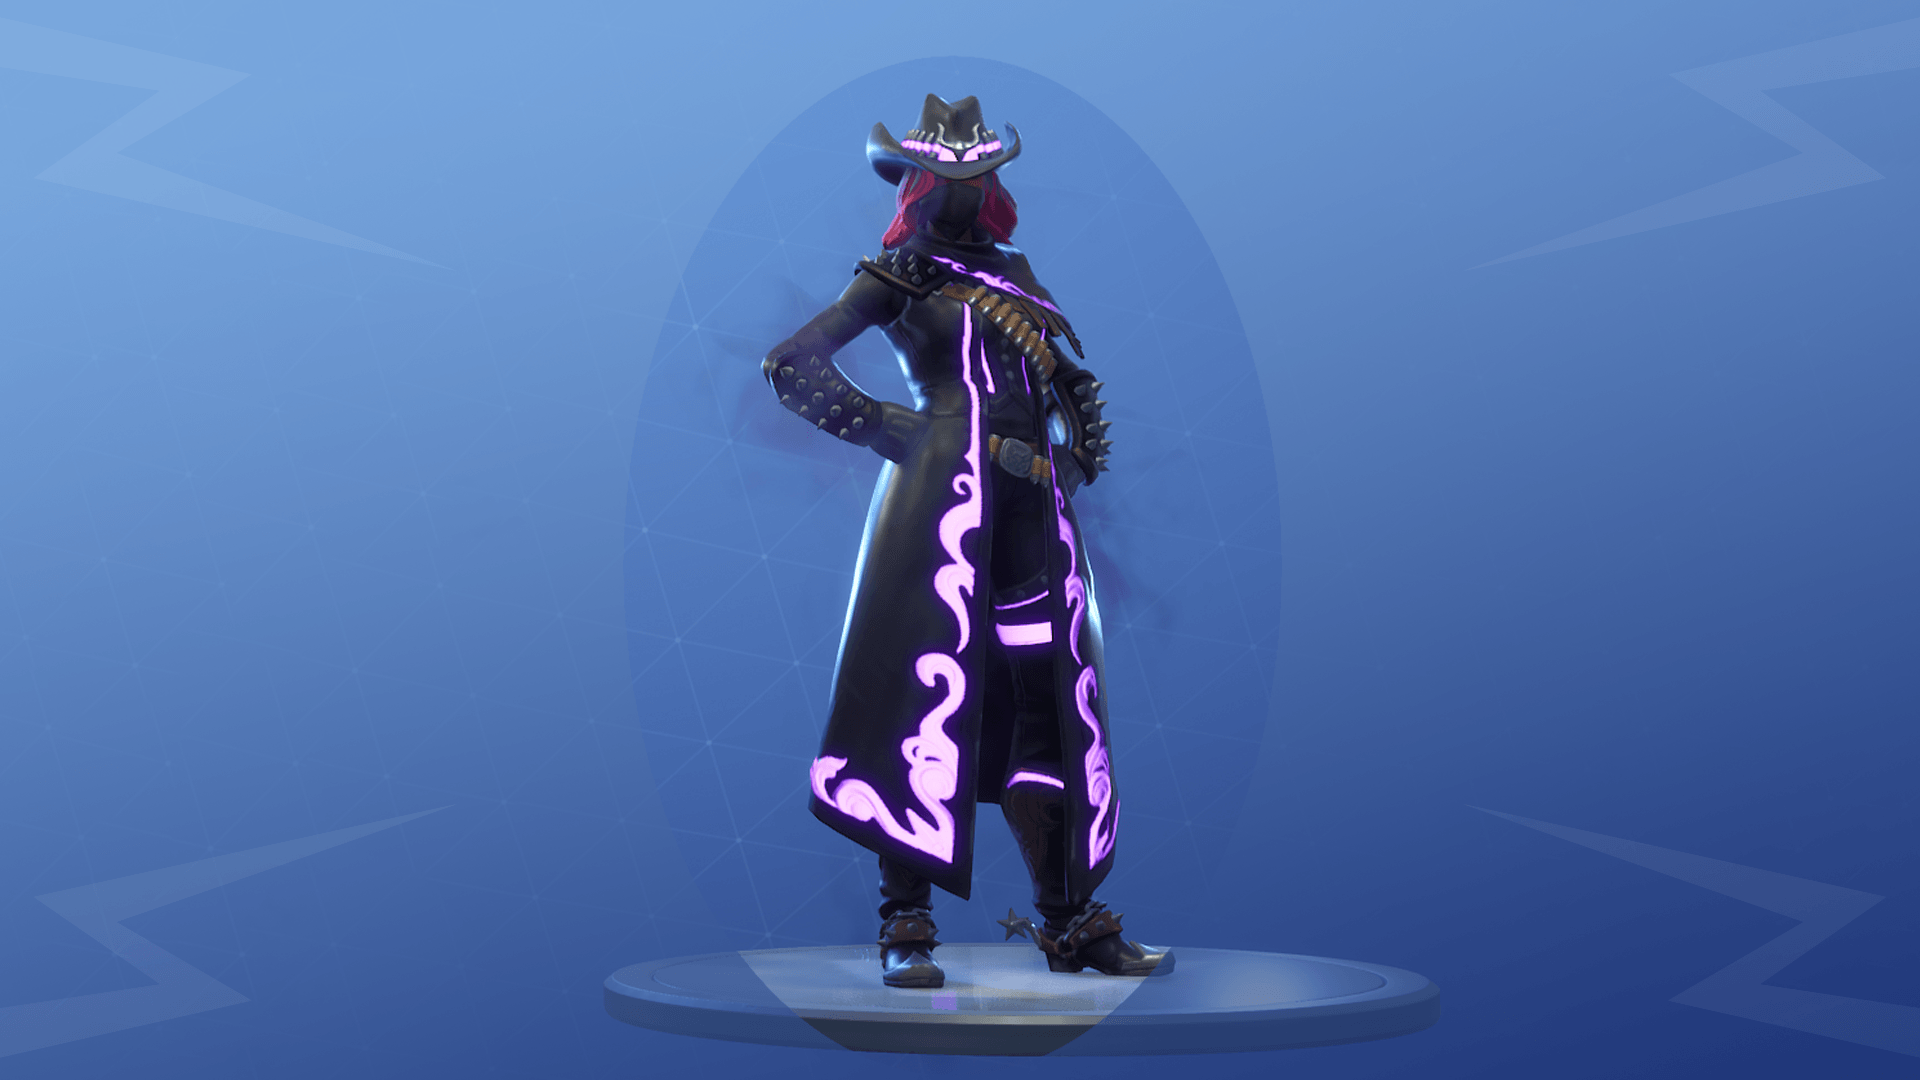 New Season 6 progressive skin: